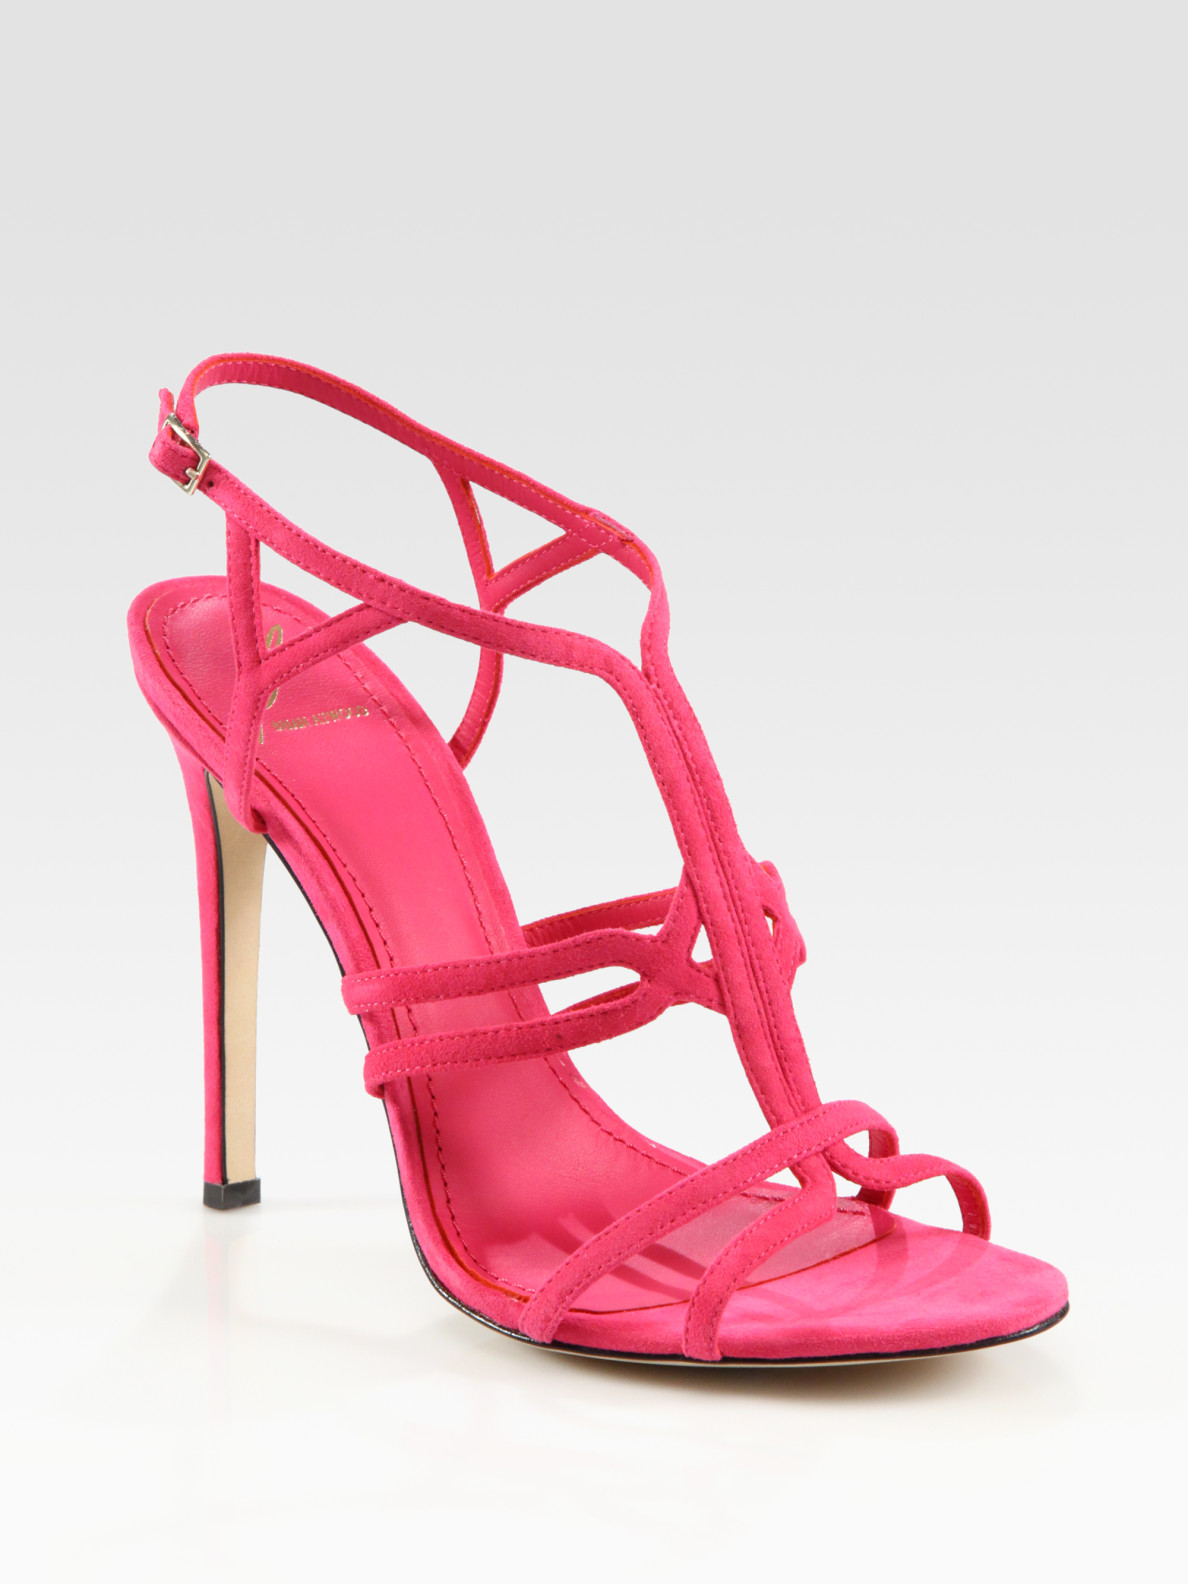 b-brian-atwood-pink-florrina-suede-high-heel-sandals-product-1-2343595-951406100.jpeg